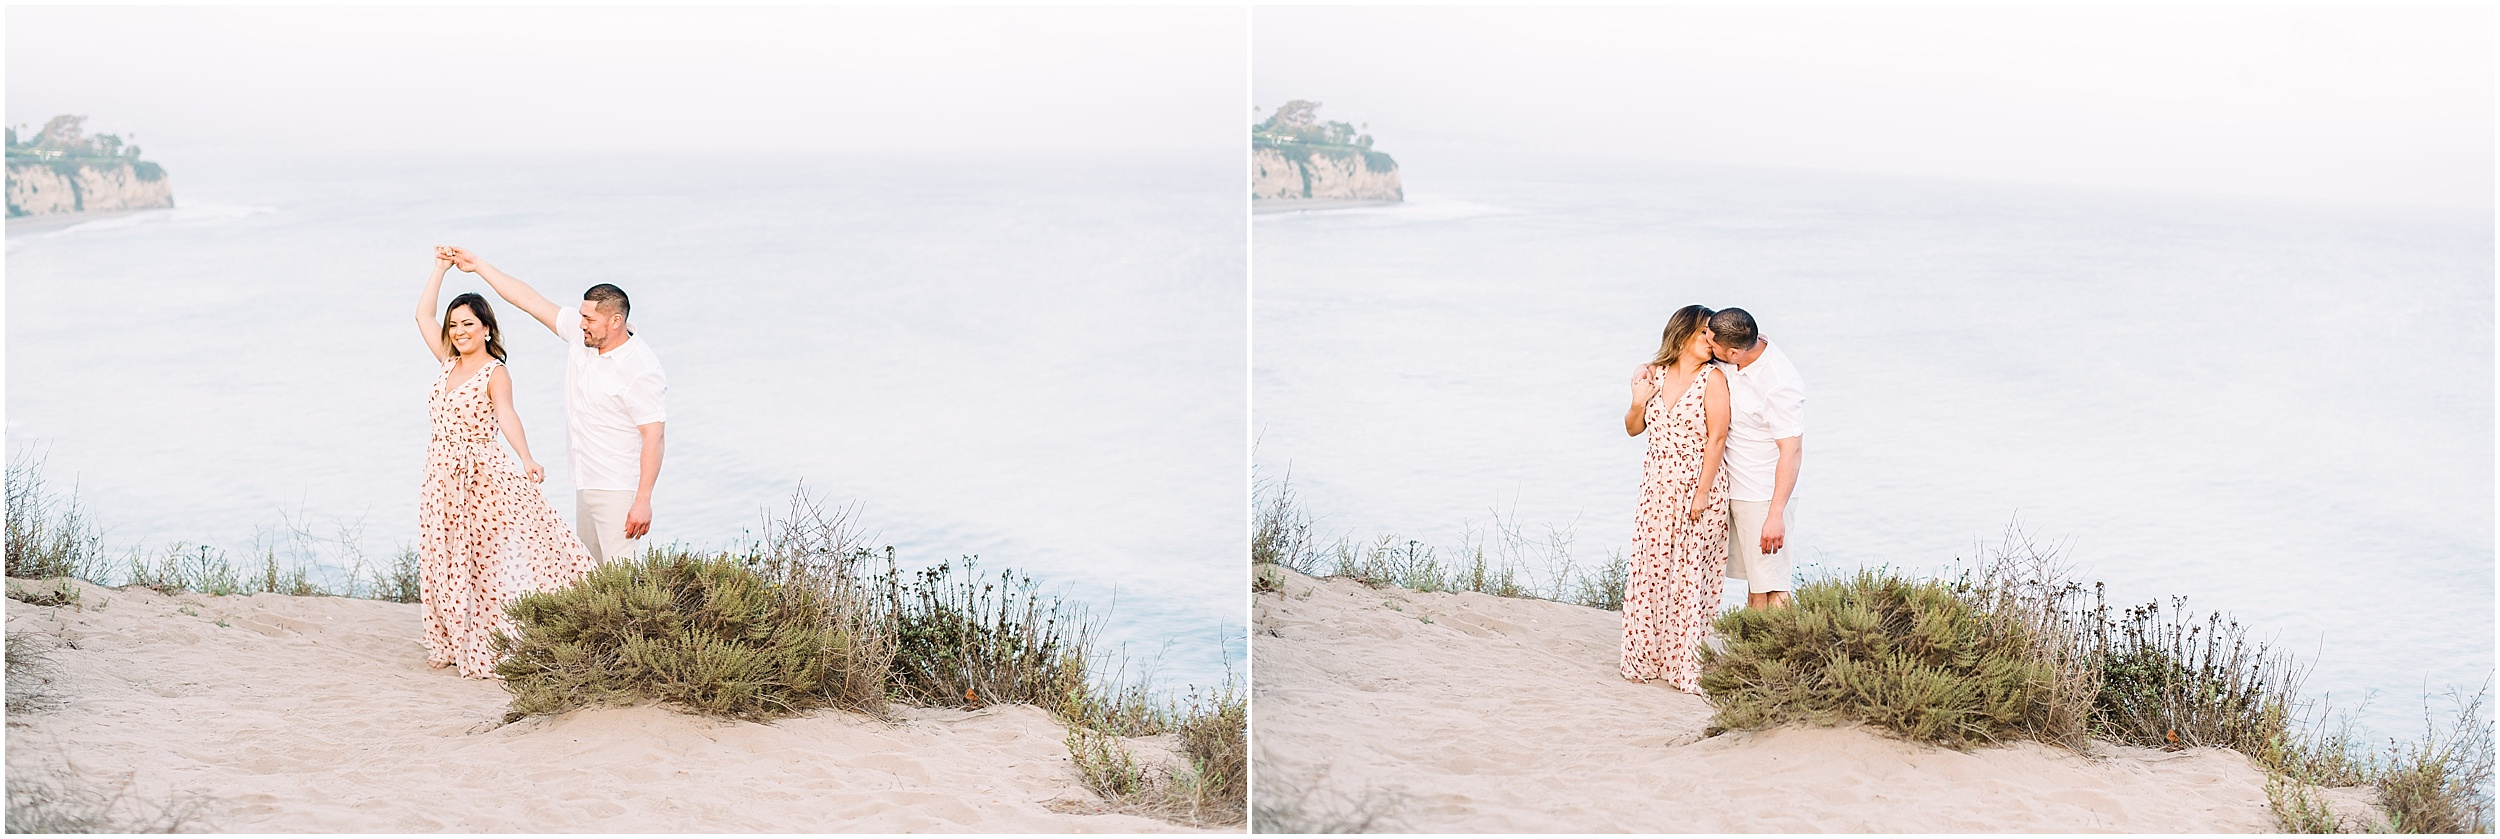 Engagement-Session-in-Malibu-California-Valeria-Gonzalez-Photography-Wedding-and-Portrait-Photographer-Richmond-Virginia-Ventura-California_0006.jpg